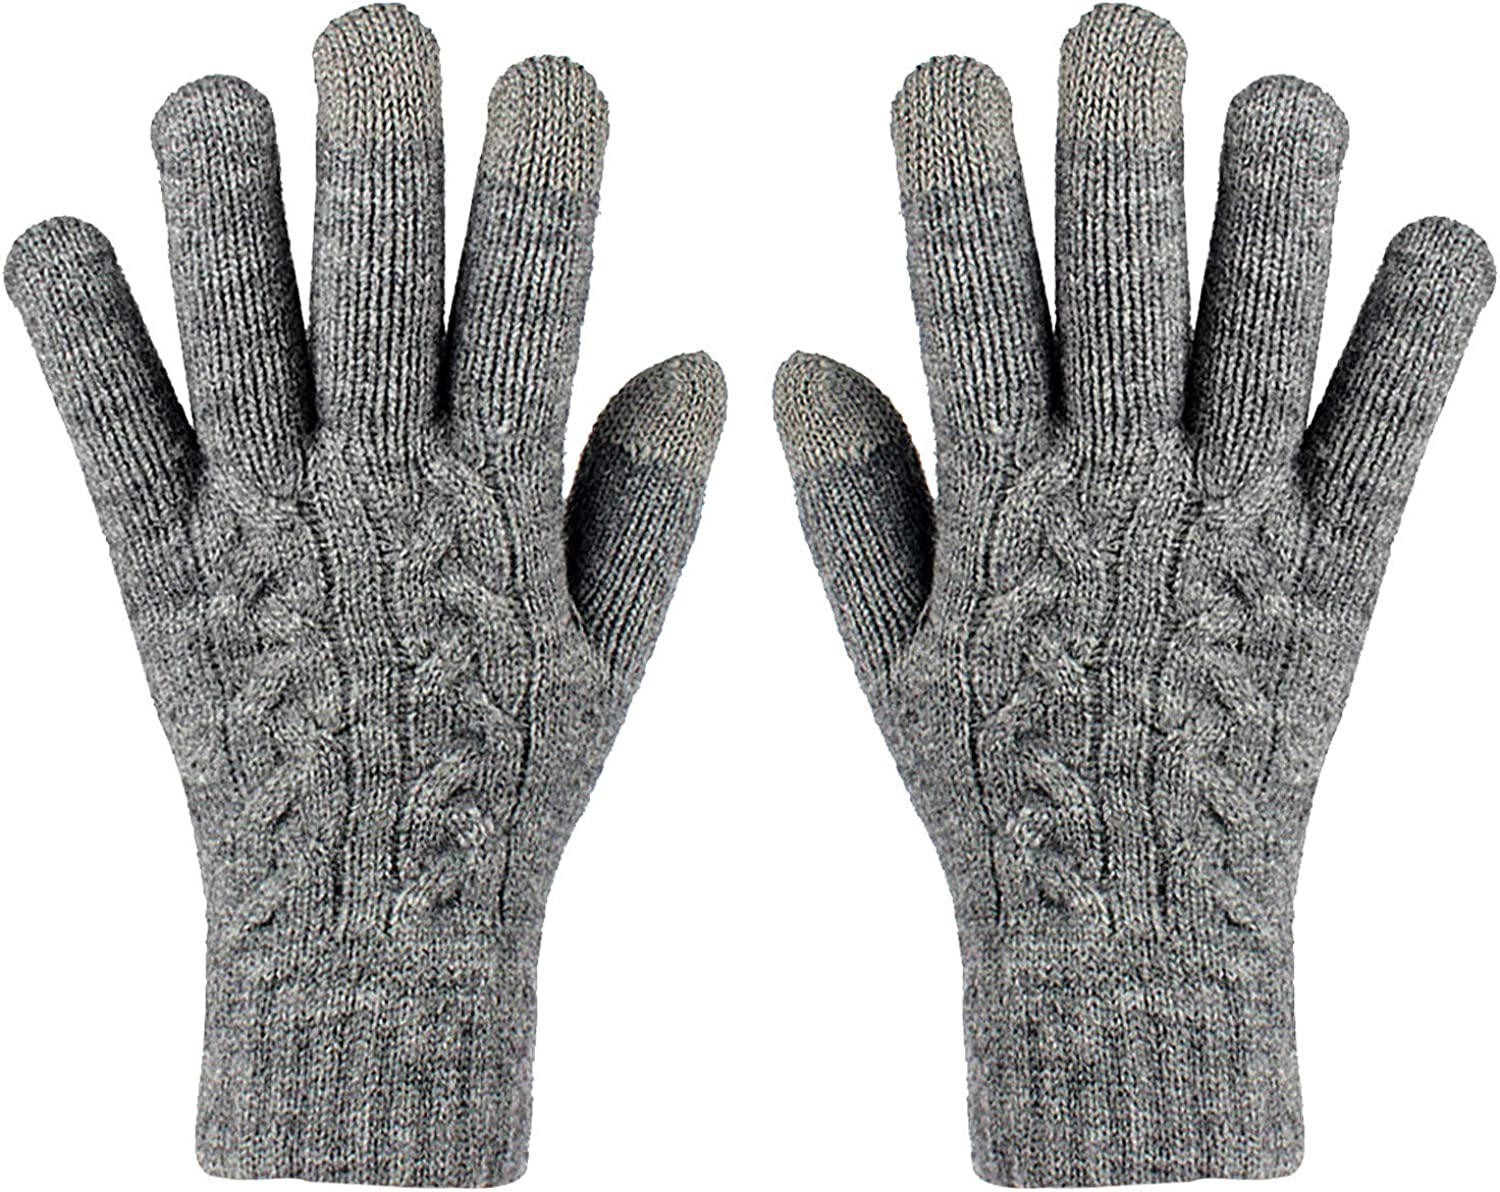 Touchscreen Texting Gloves Winter Warm Double Layer Elastic Knit Non-Slip Glvoes For Women